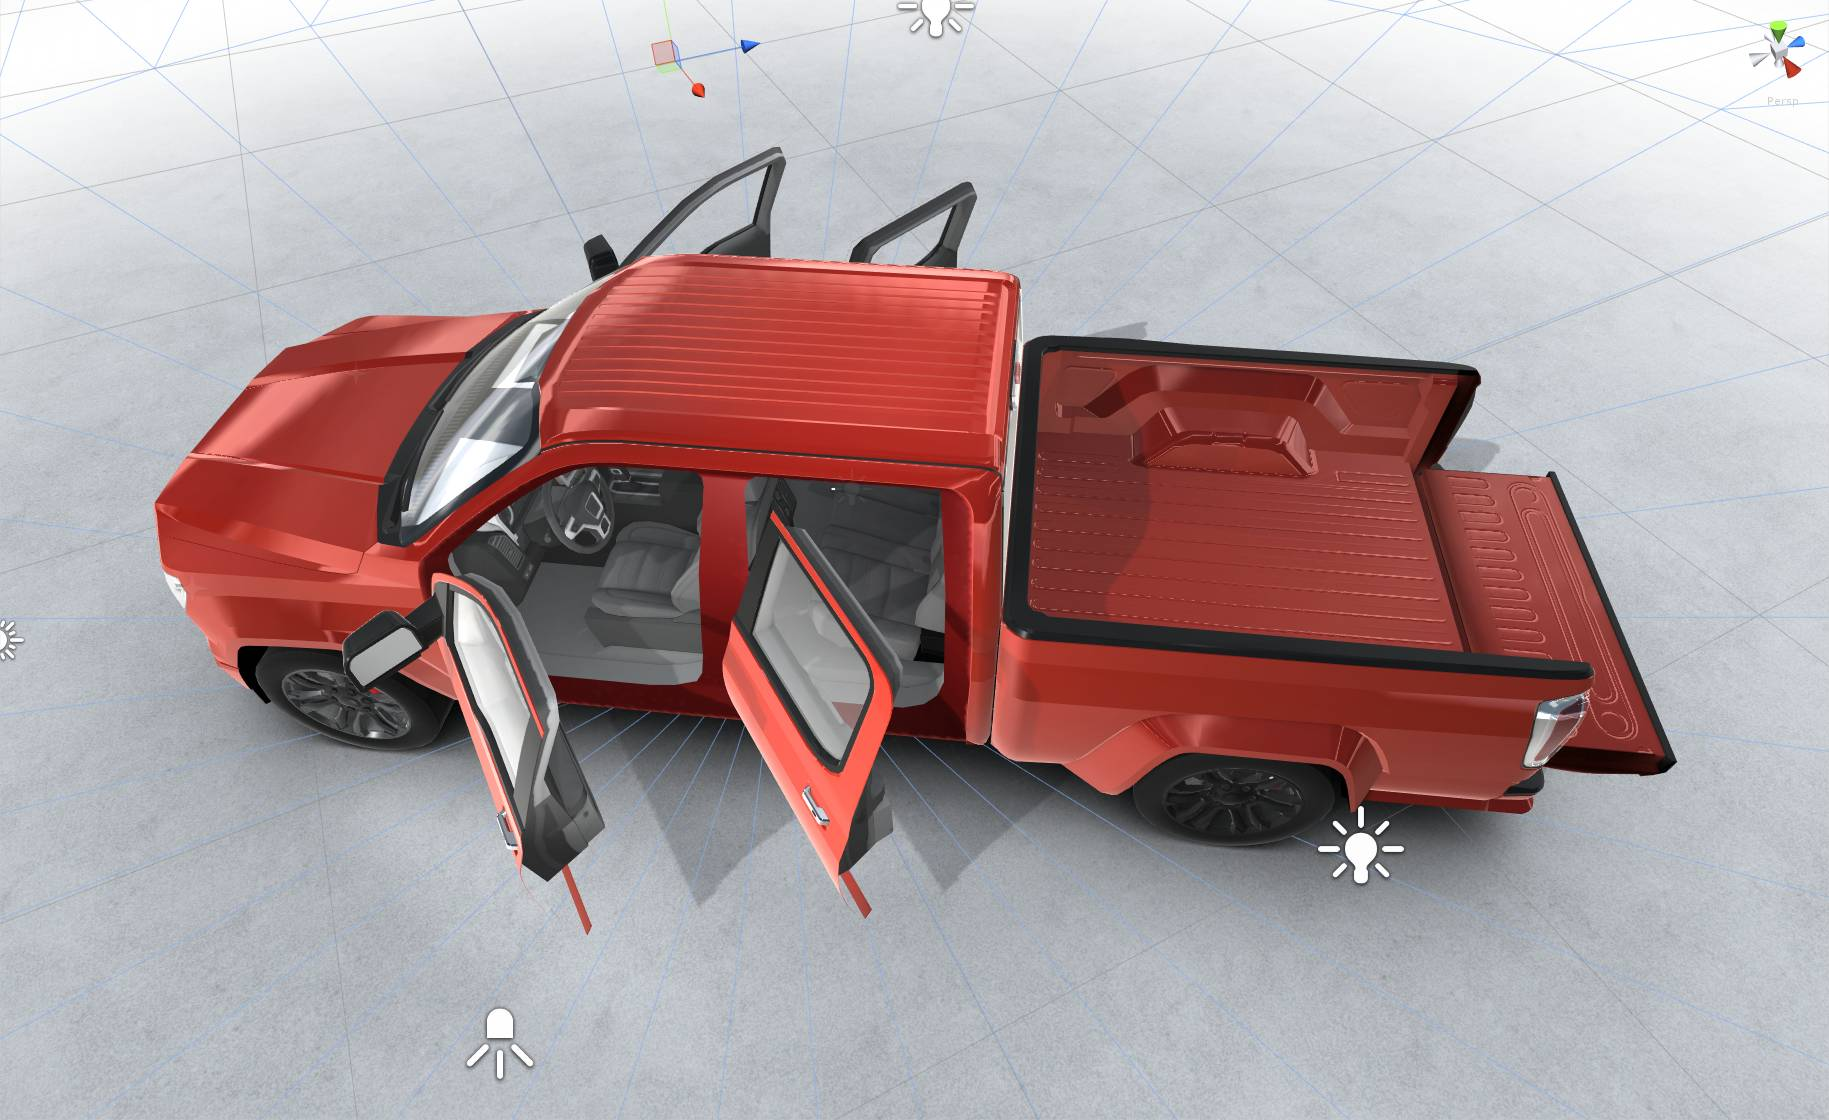 generic pickup realtime 3d model 3ds max fbx c4d lwo ma mb other obj 223799